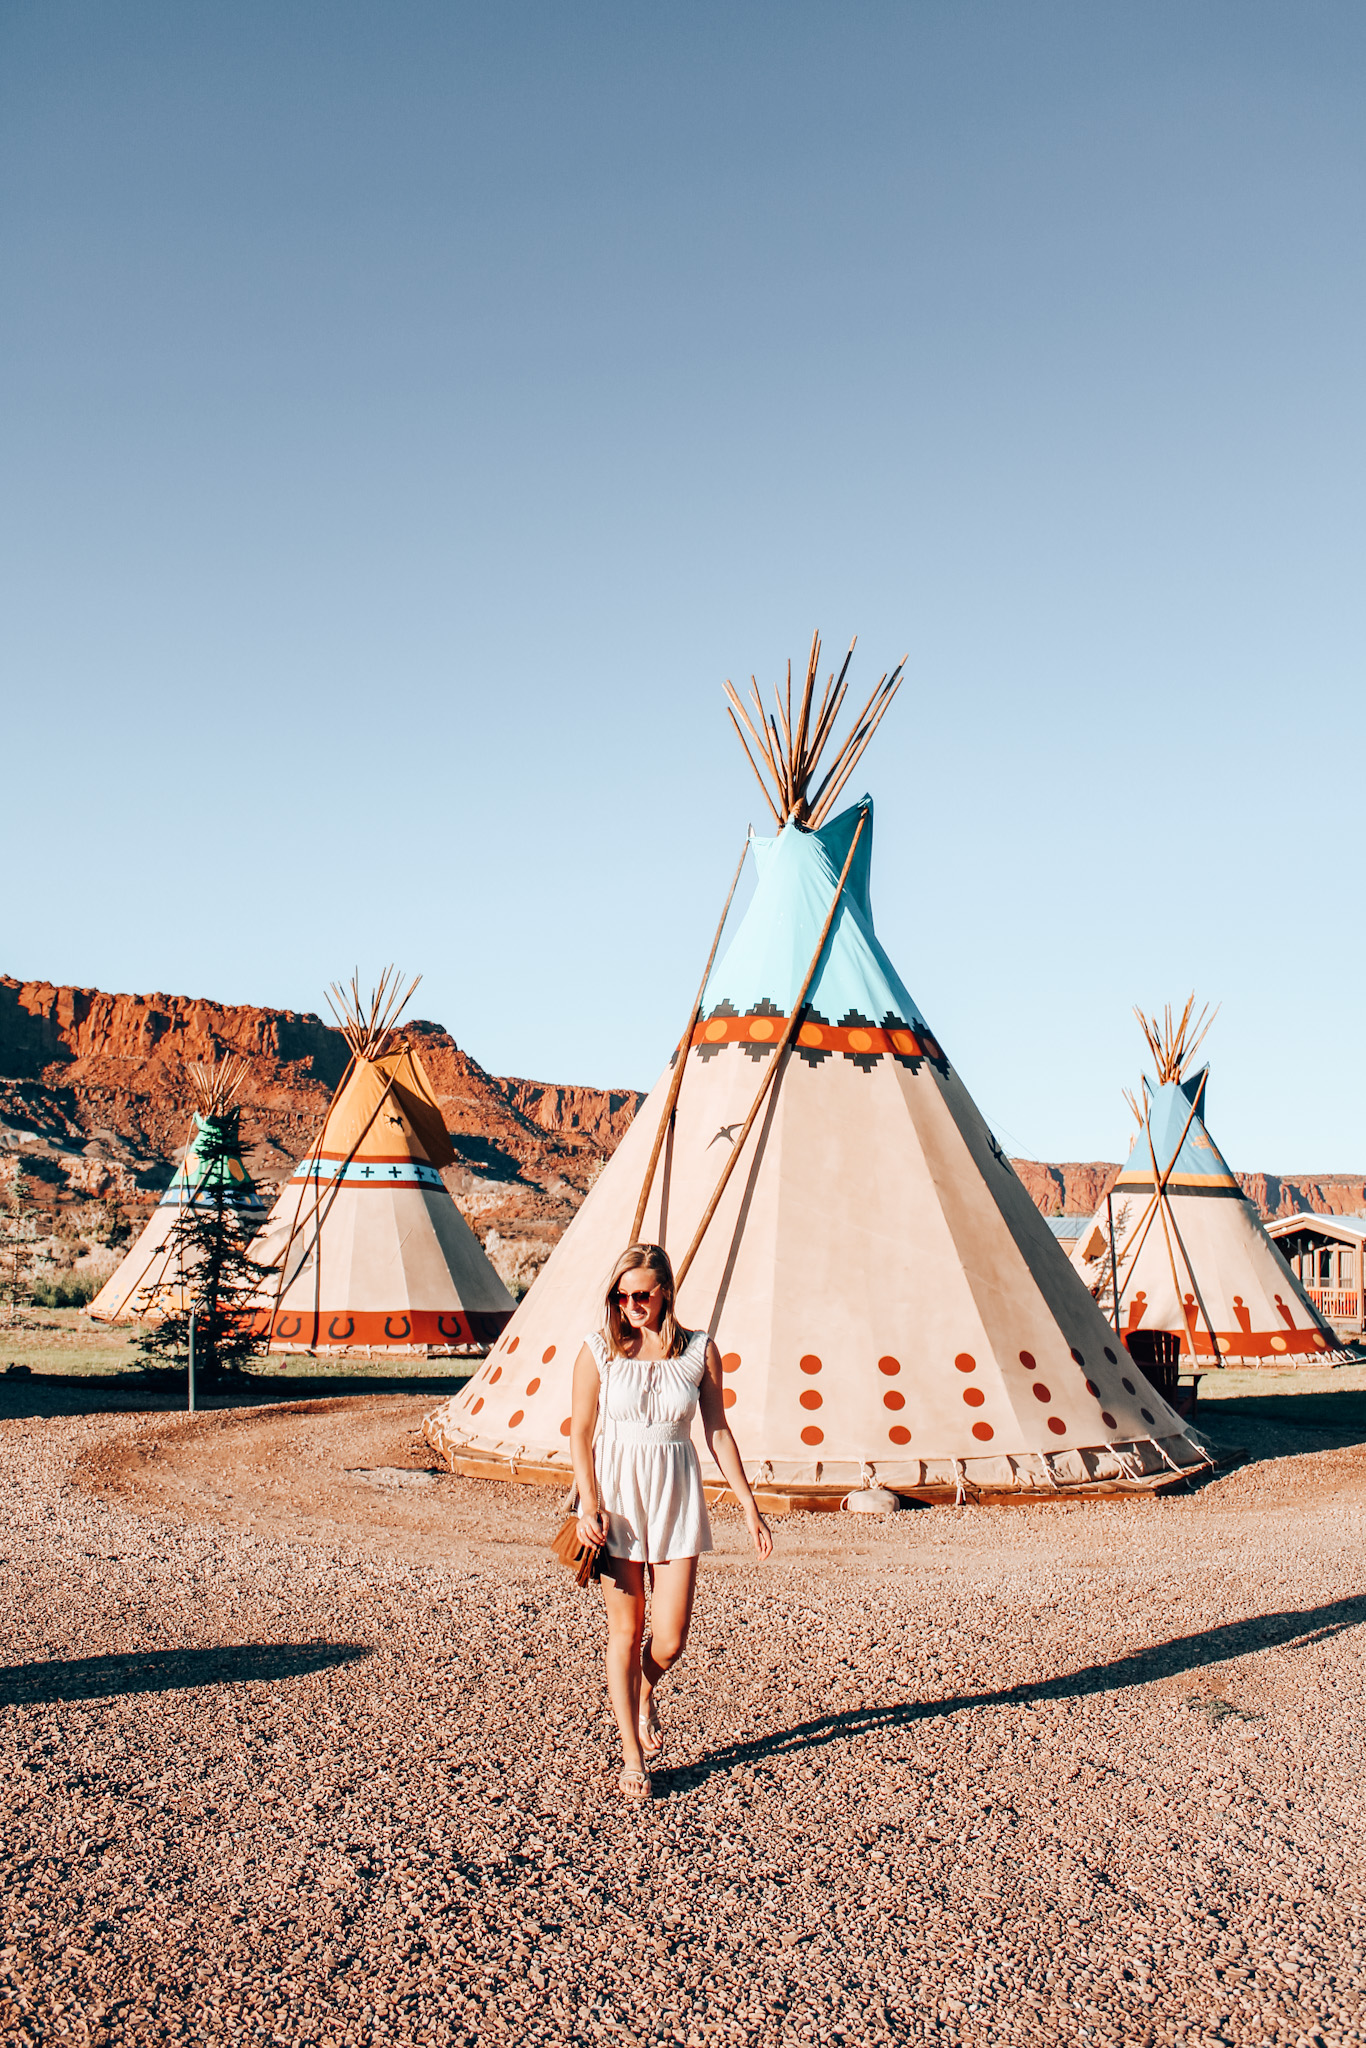 Capitol Reef Resort has teepees, luxury wagons, and private cabins to stay in